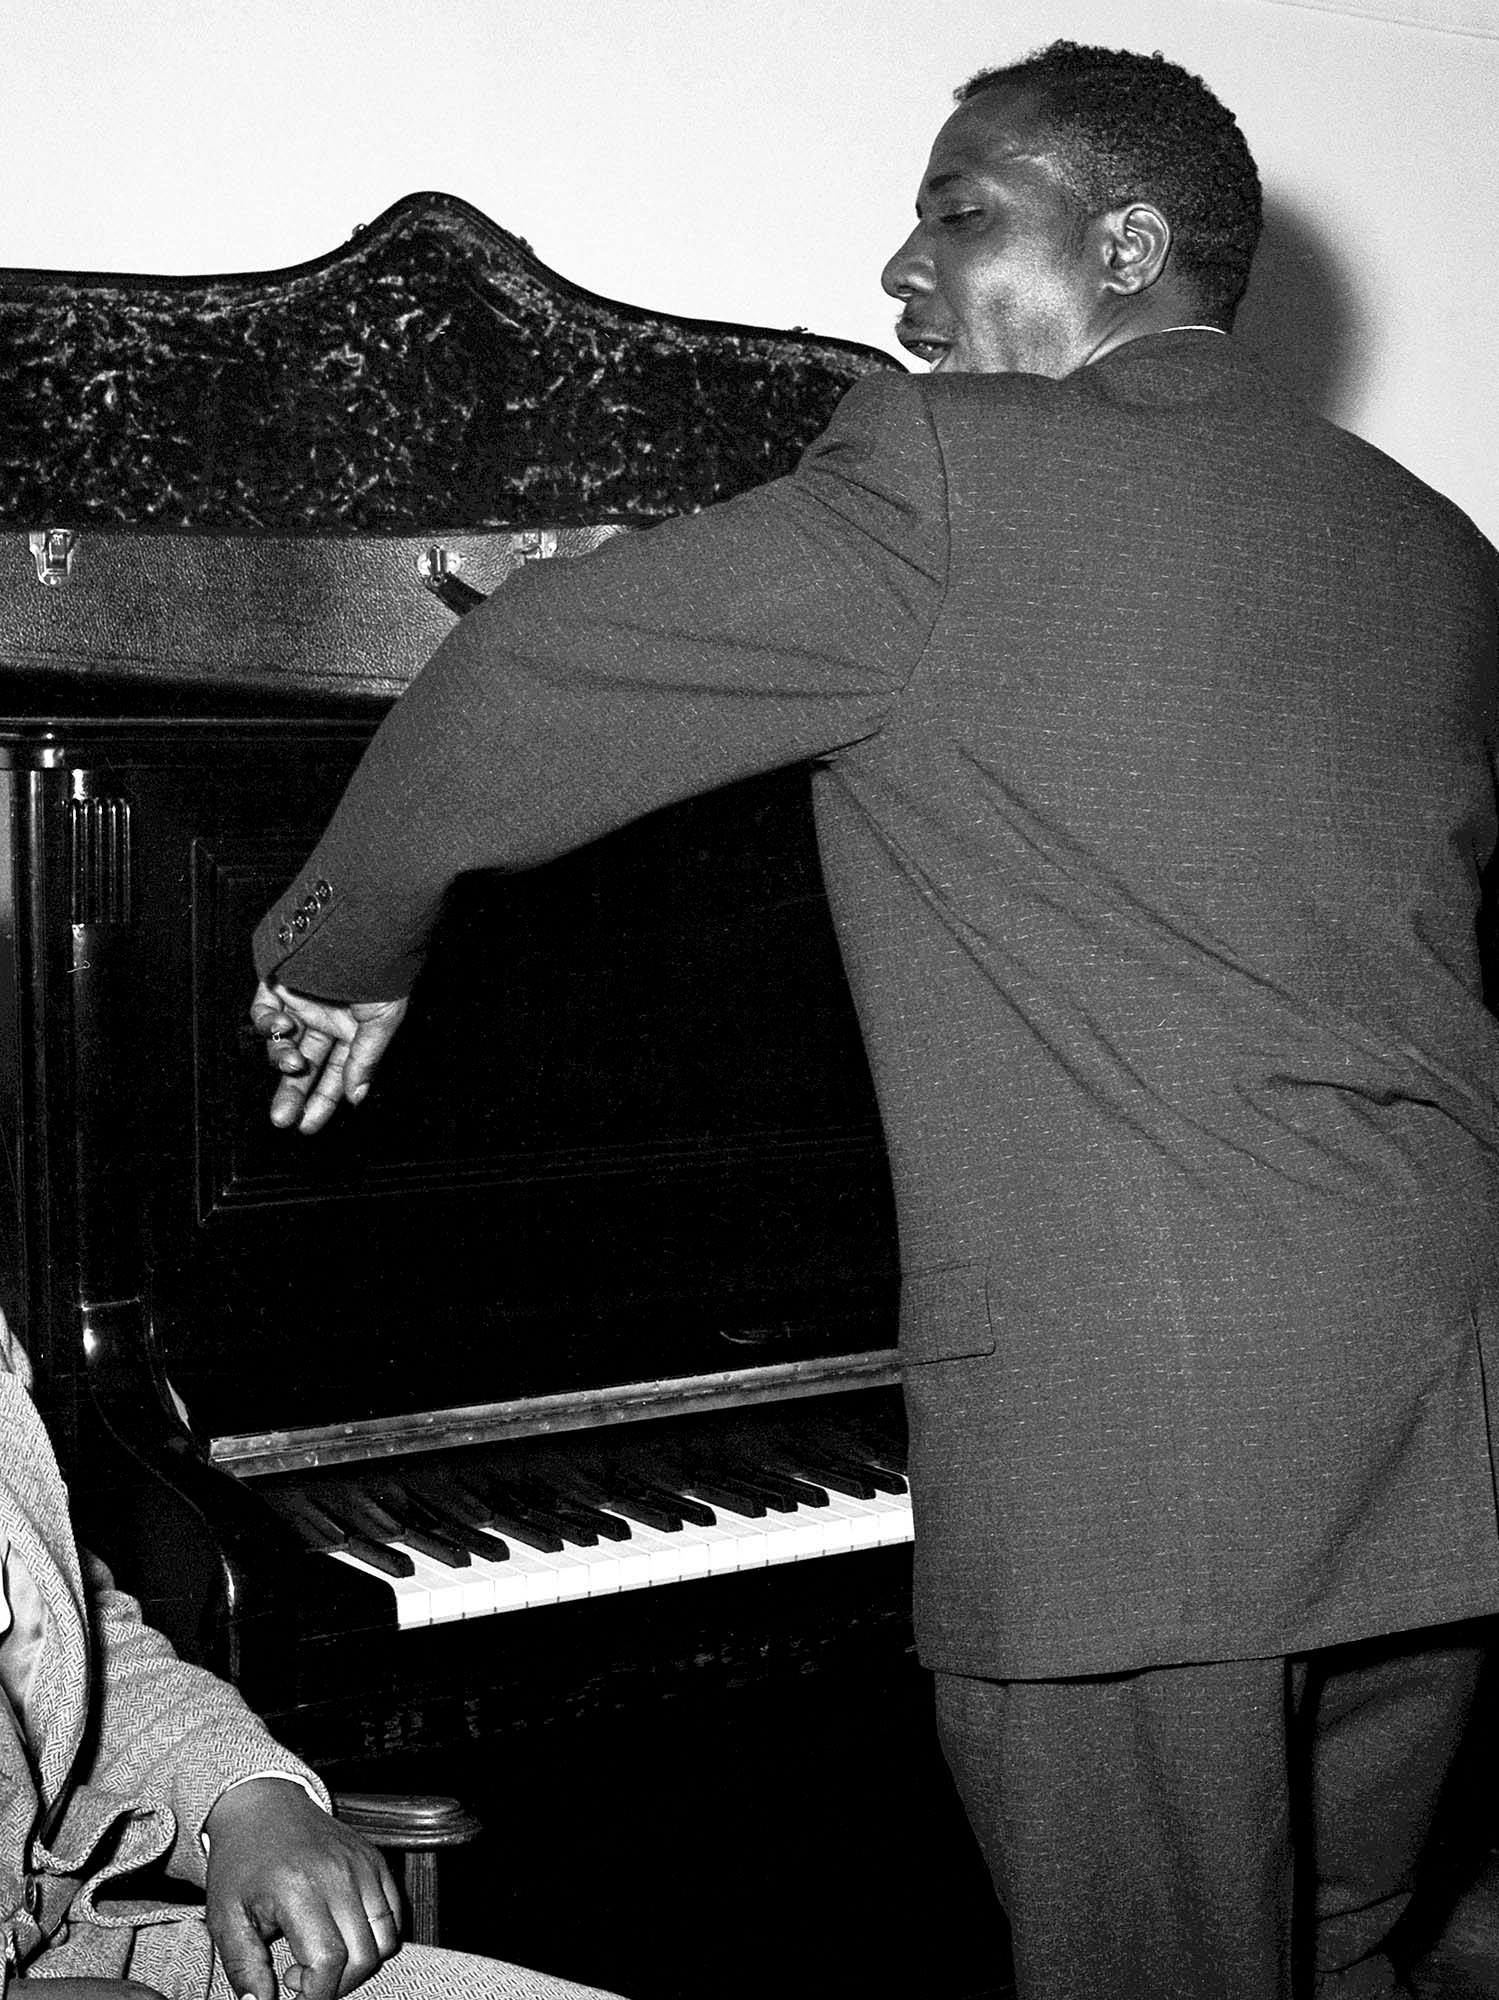 Thelonious Monk in Paris early fifties by Marcel Fleiss 4